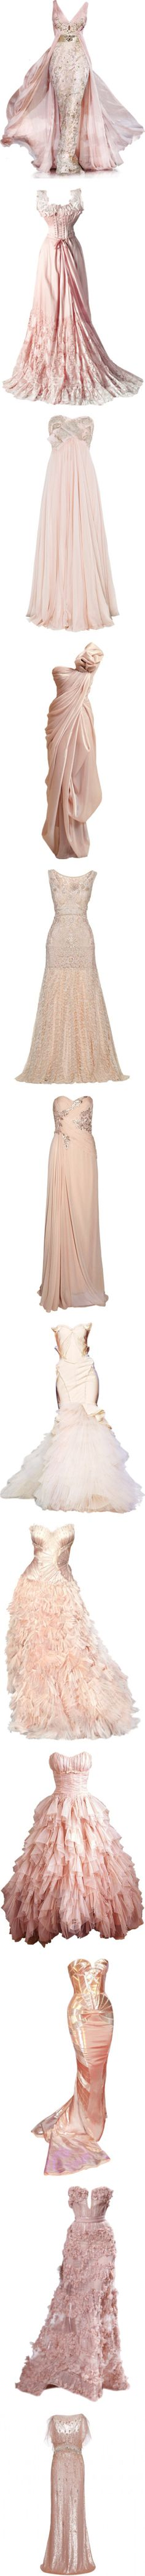 """""""Gowns Pink/Peach"""" by altagal ❤ liked on Polyvore"""